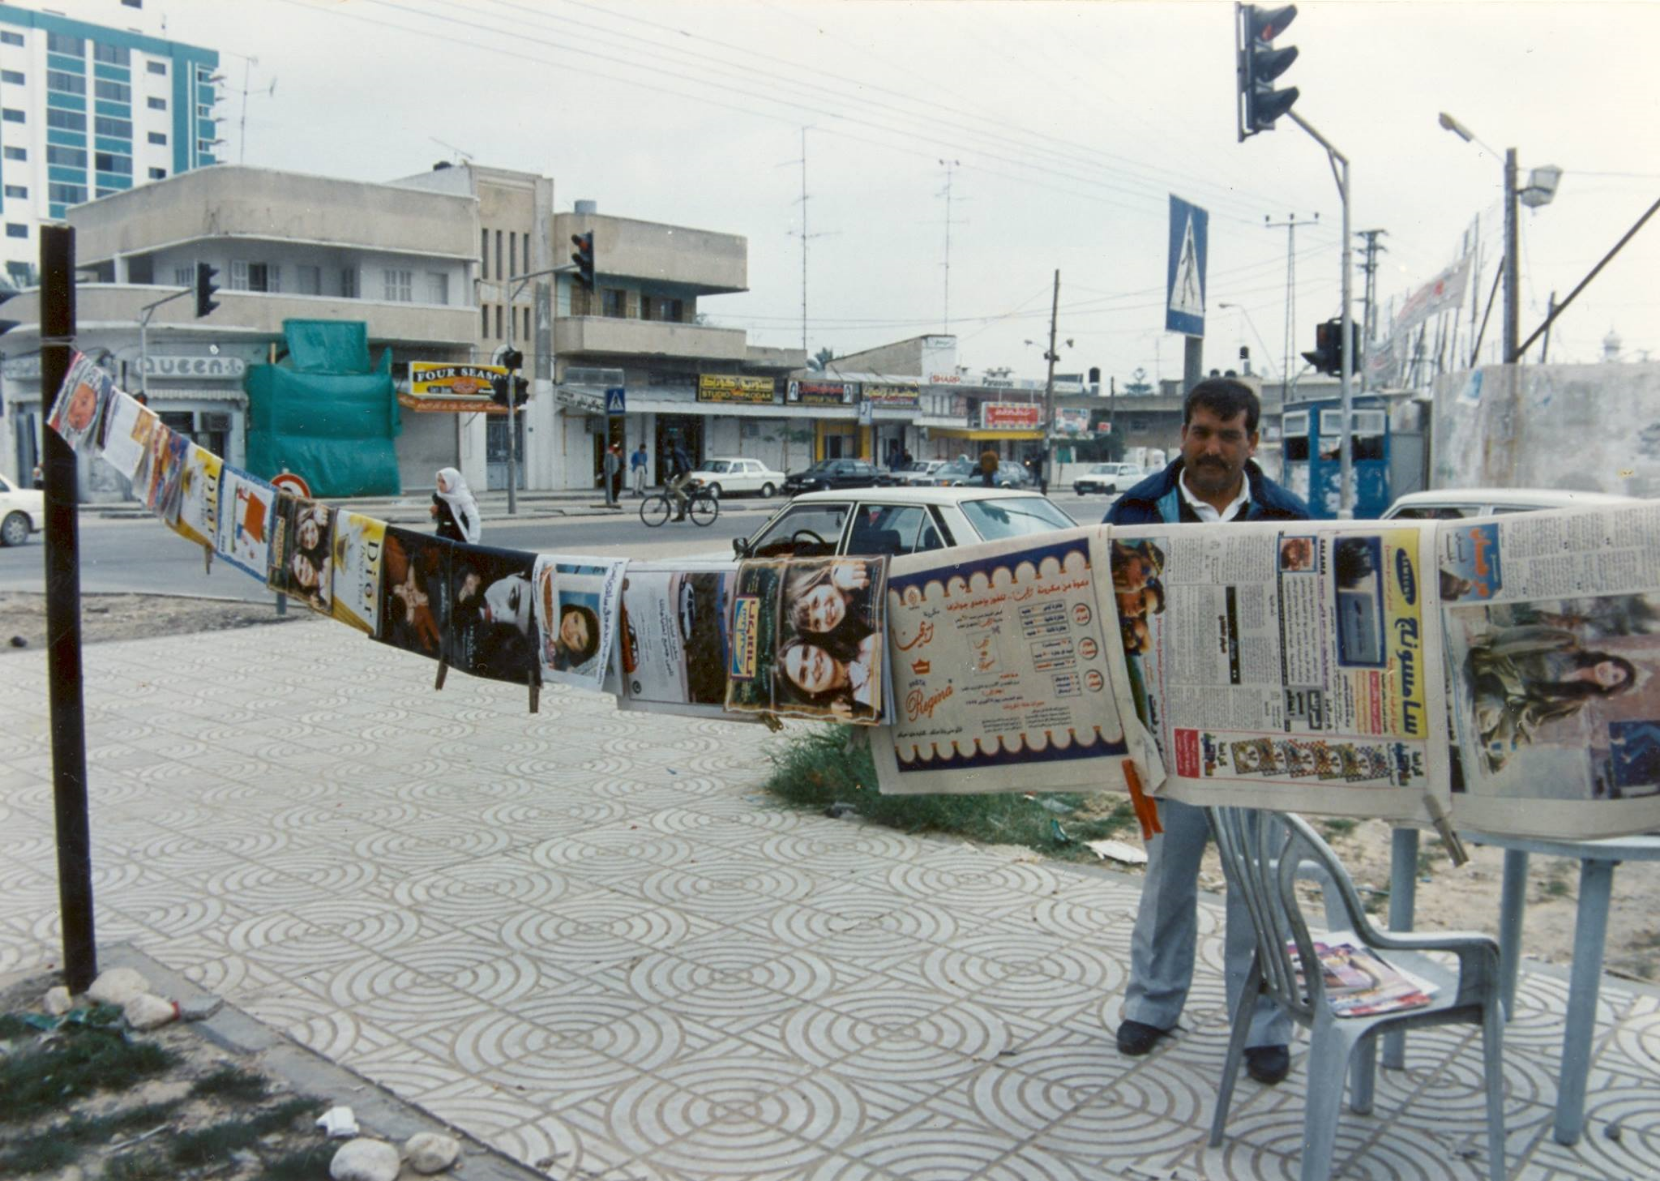 Wind    ows copies on sale (for 1/2 nis)  in the main street of Gaza (1997)